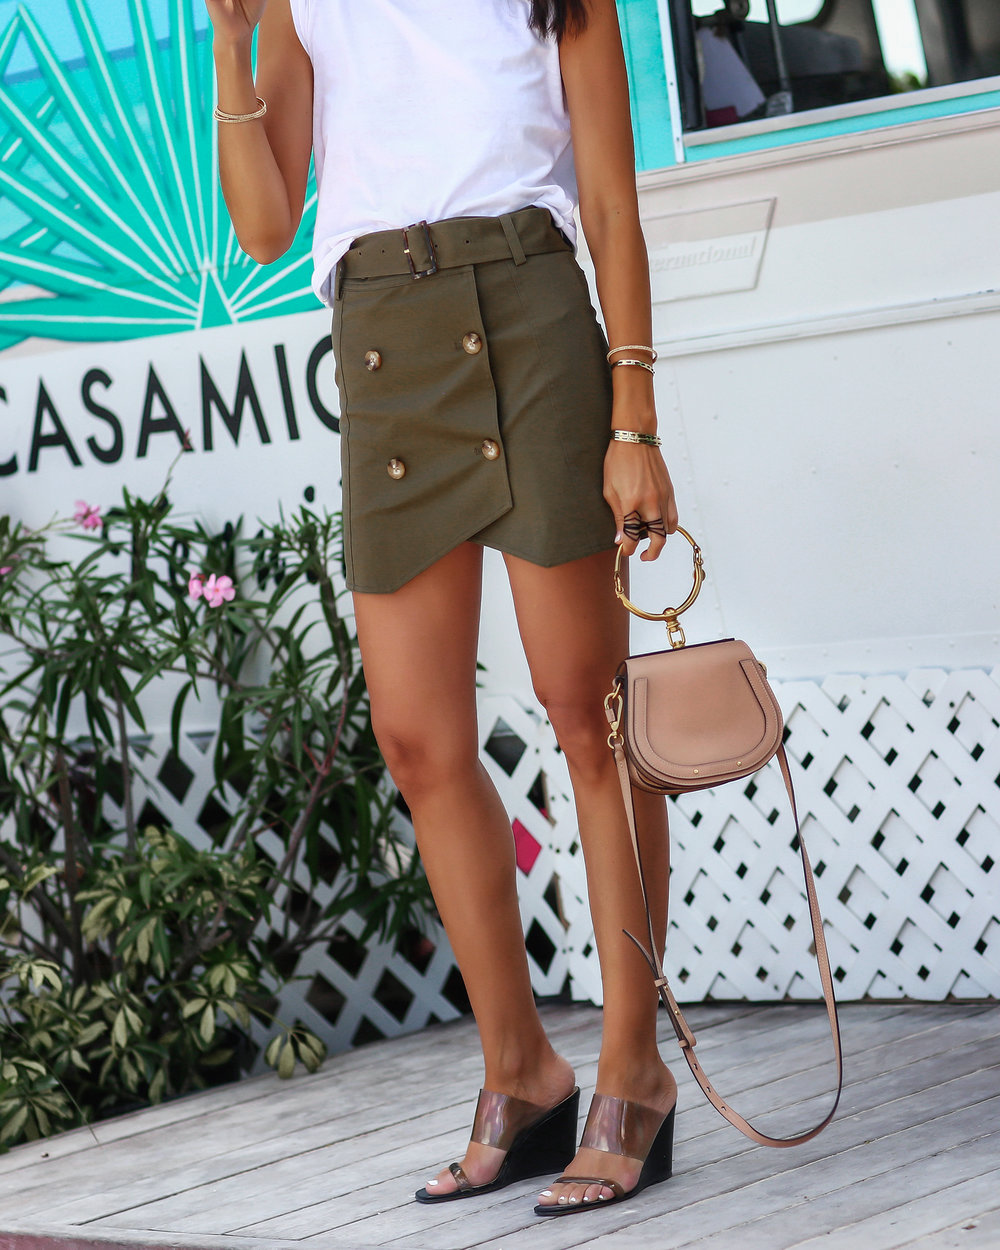 Detail Photo of Intermix Army Green Miniskirt and Maryam Nassir Zadeh Sandals